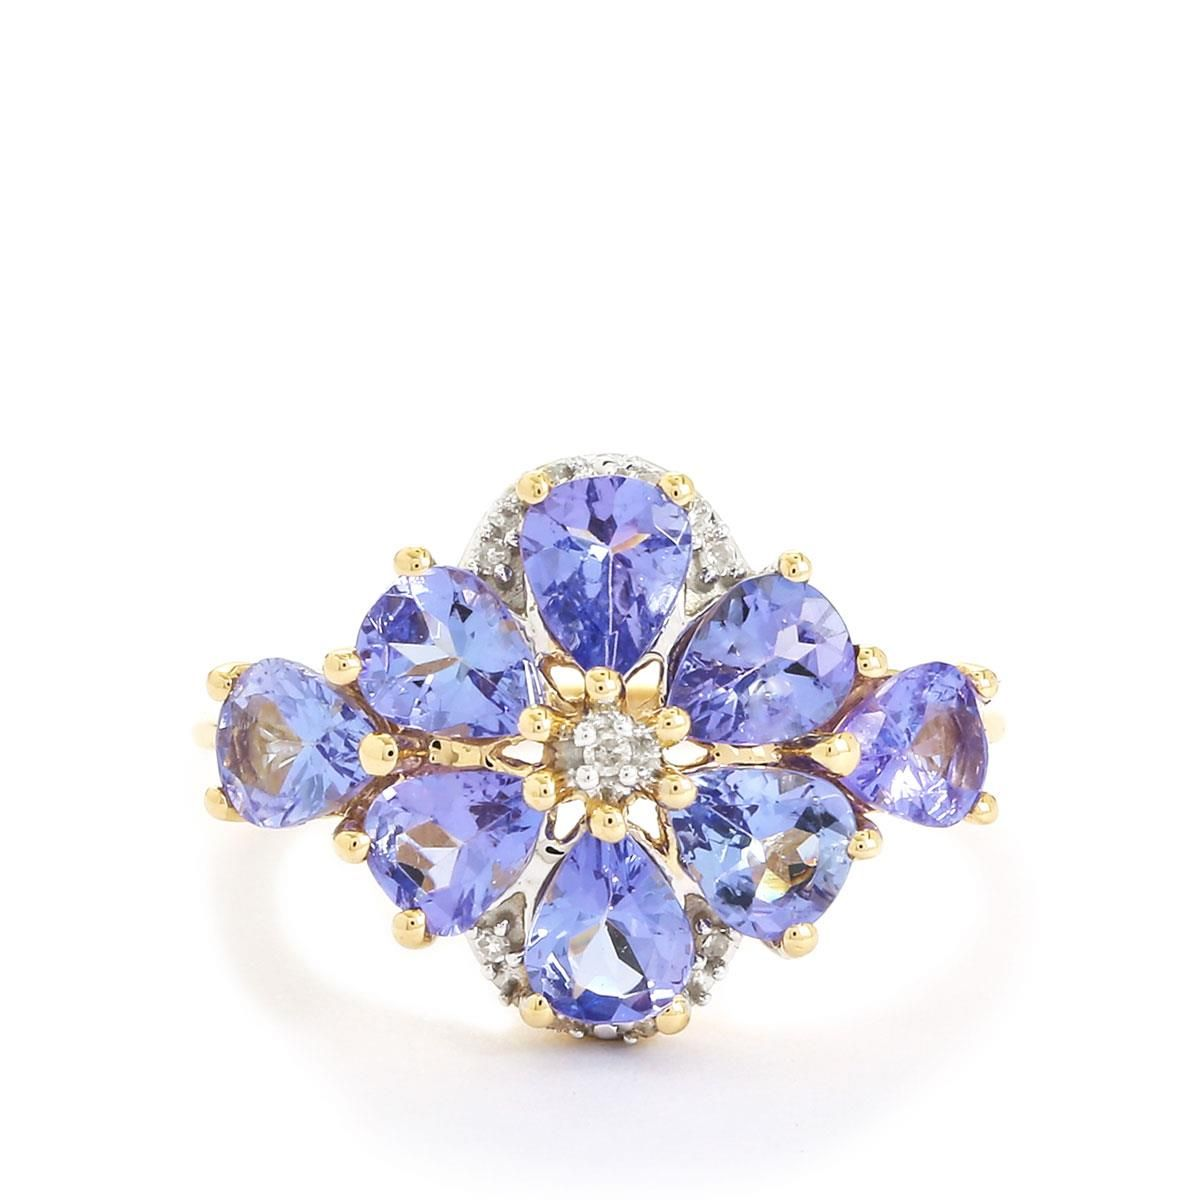 A gorgeous Ring from the Jacque Christie collection, made of 9K Gold featuring 2.38cts of amazing AA clarity Tanzanite and Diamonds.